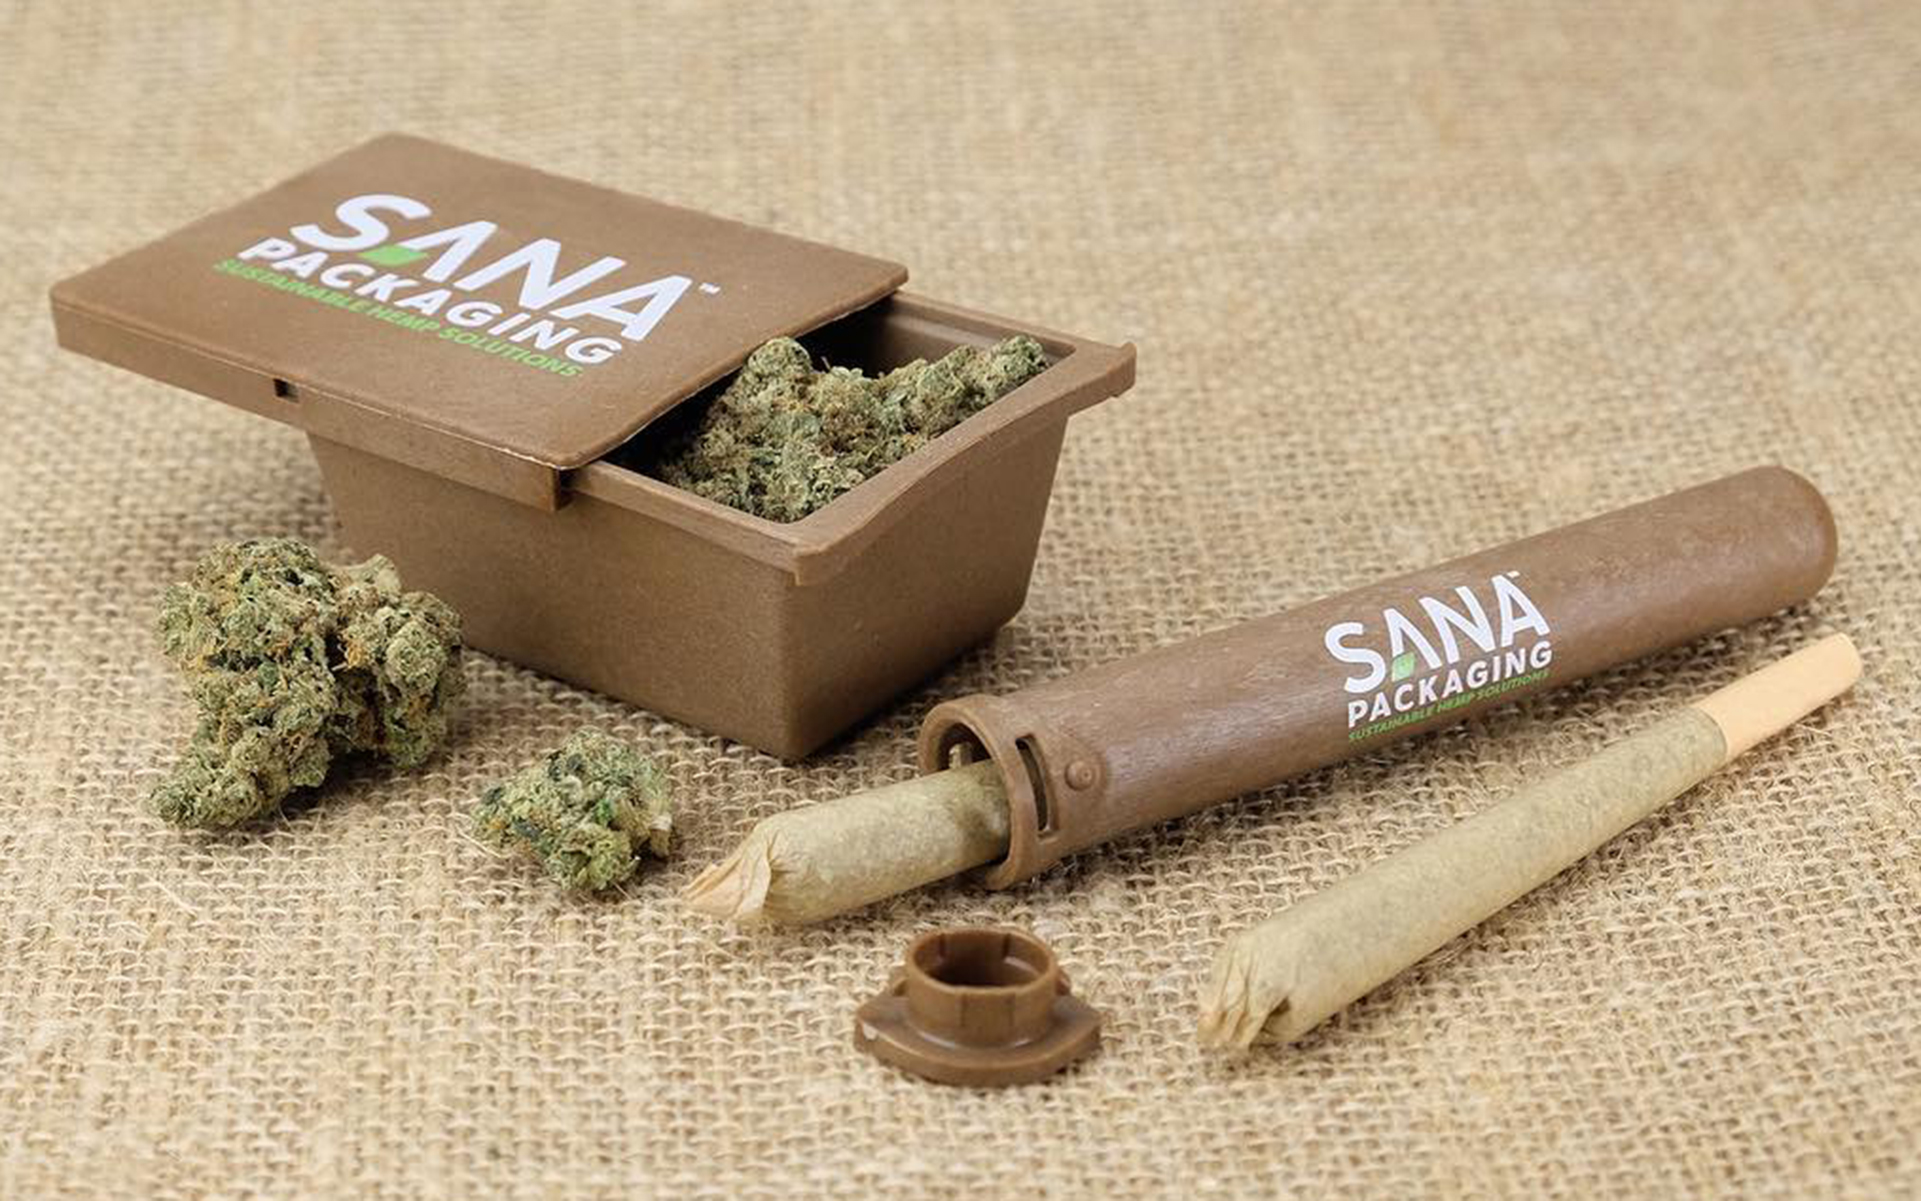 cannabis friendly eco brands sustainable sana sustainably helping leafly courtesy december